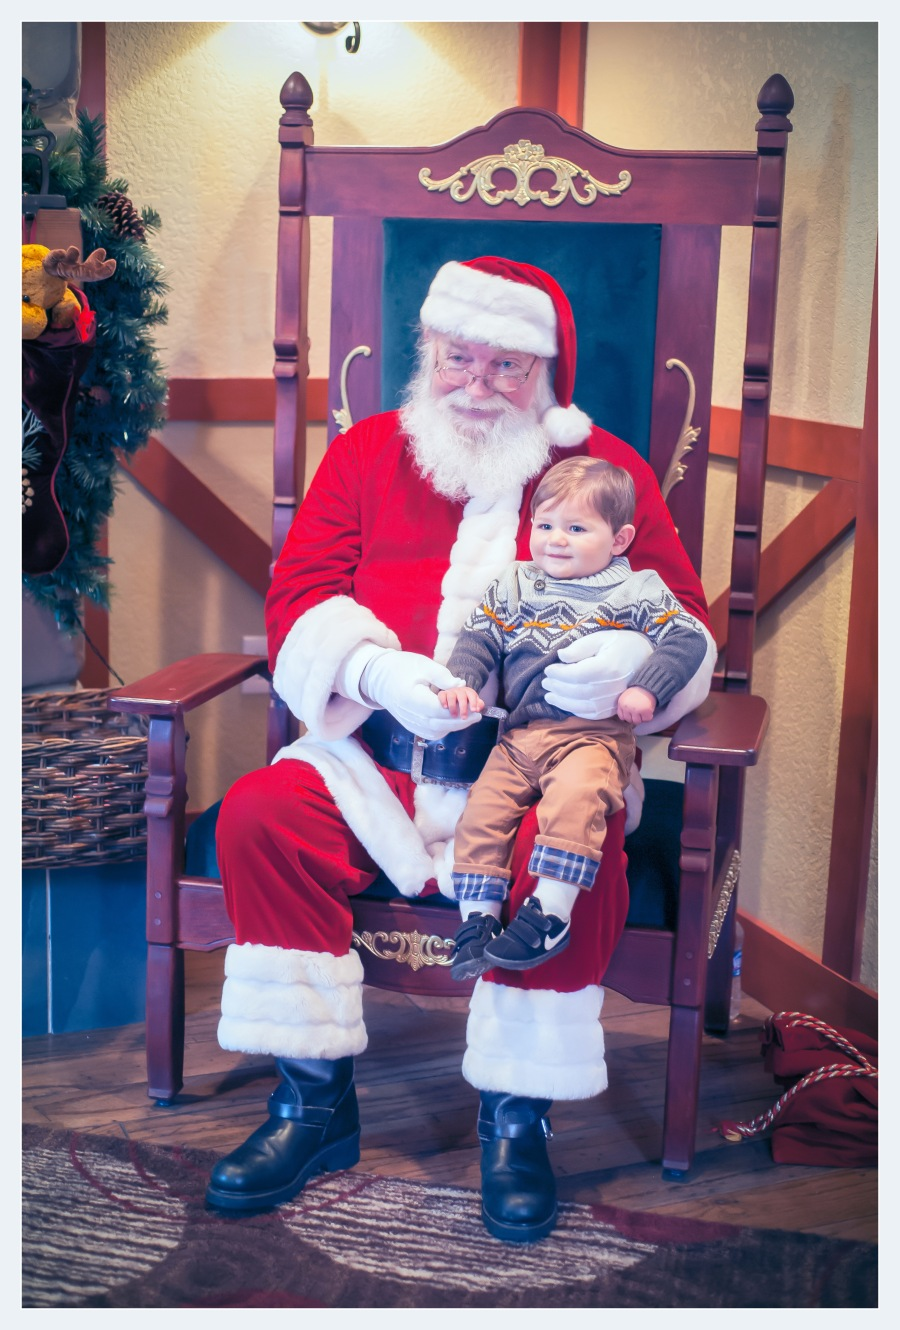 Luke and Santa posing for the camera.